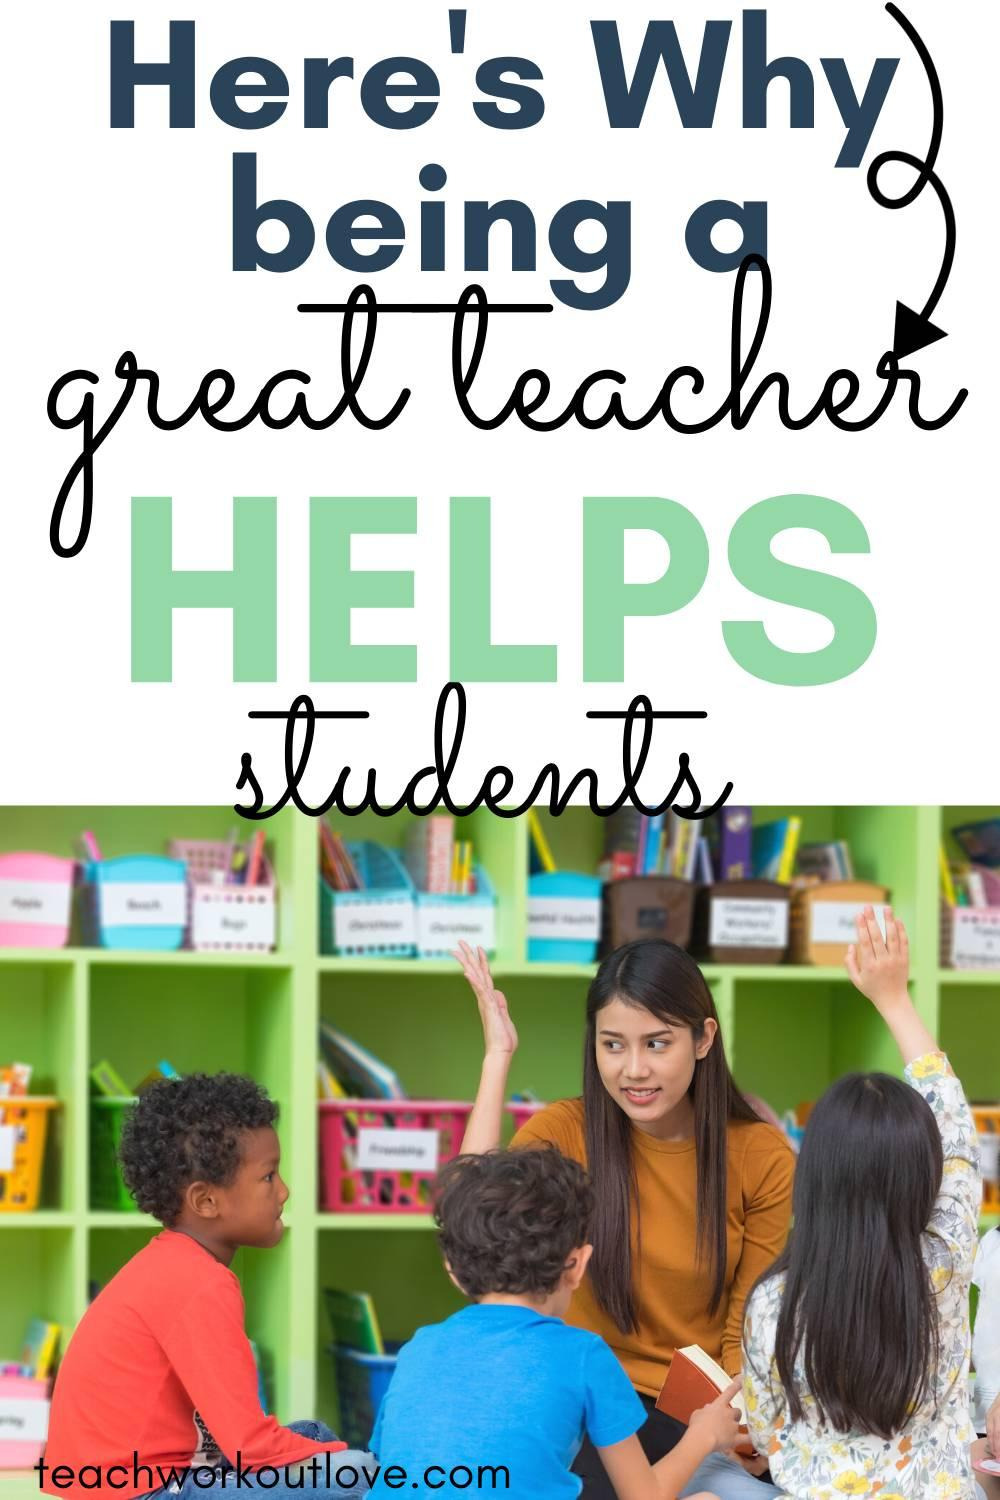 Being a great teacher can really change the life of your students without you even knowing it. Here's some positive reasons of why.